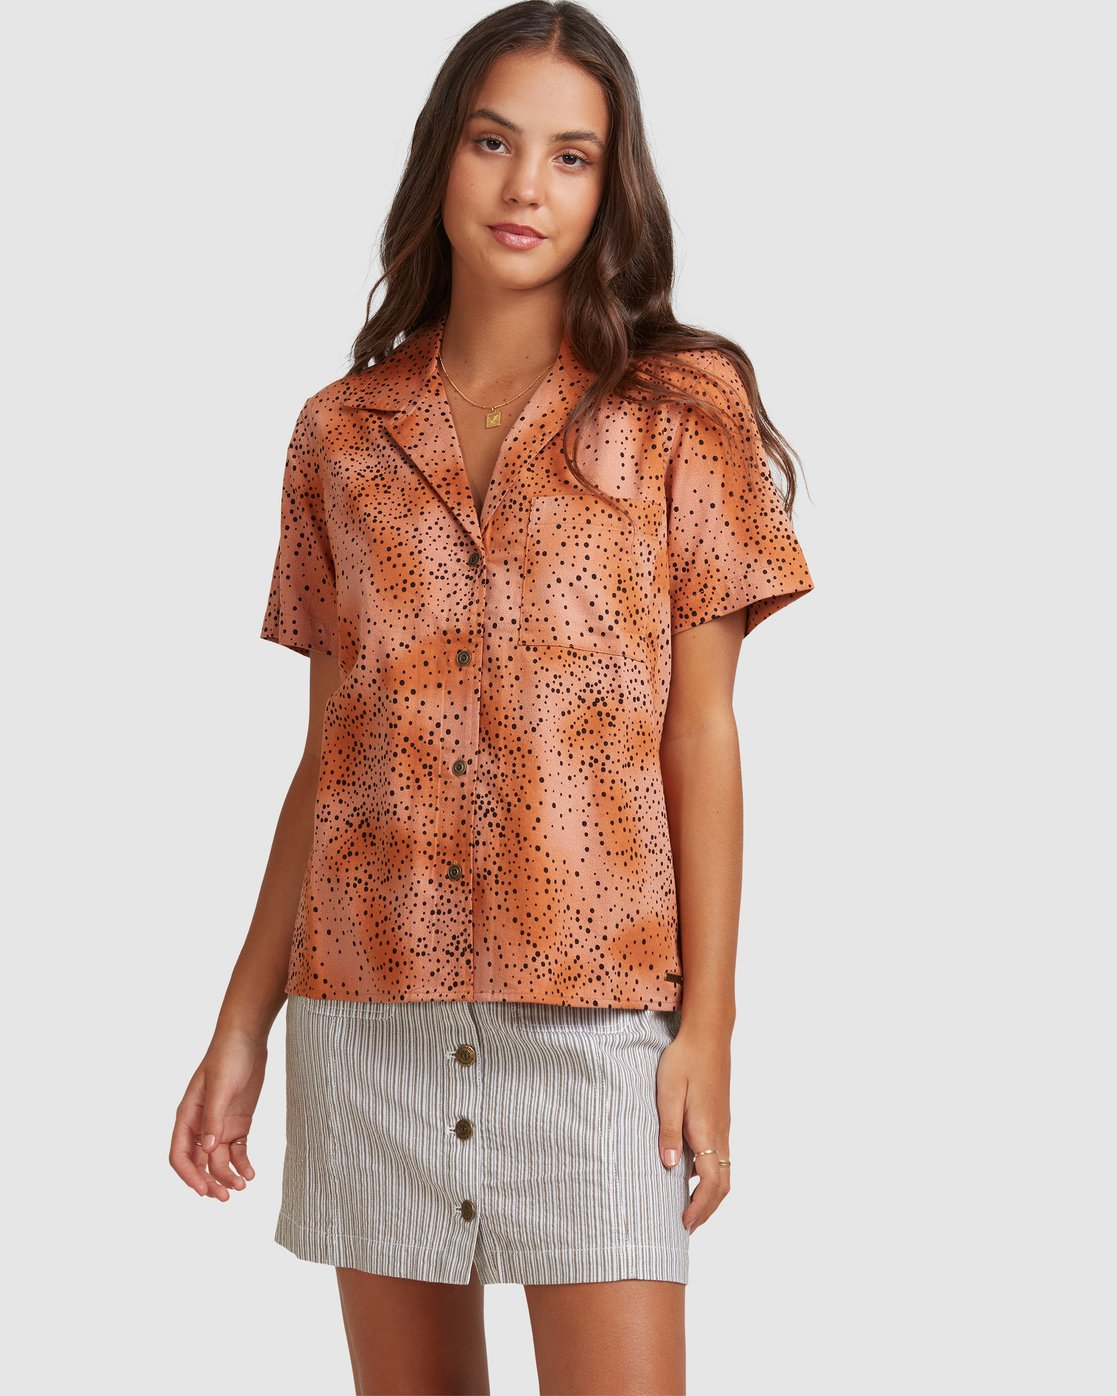 0 WILDSIDE SHIRT Brown 217212 Element